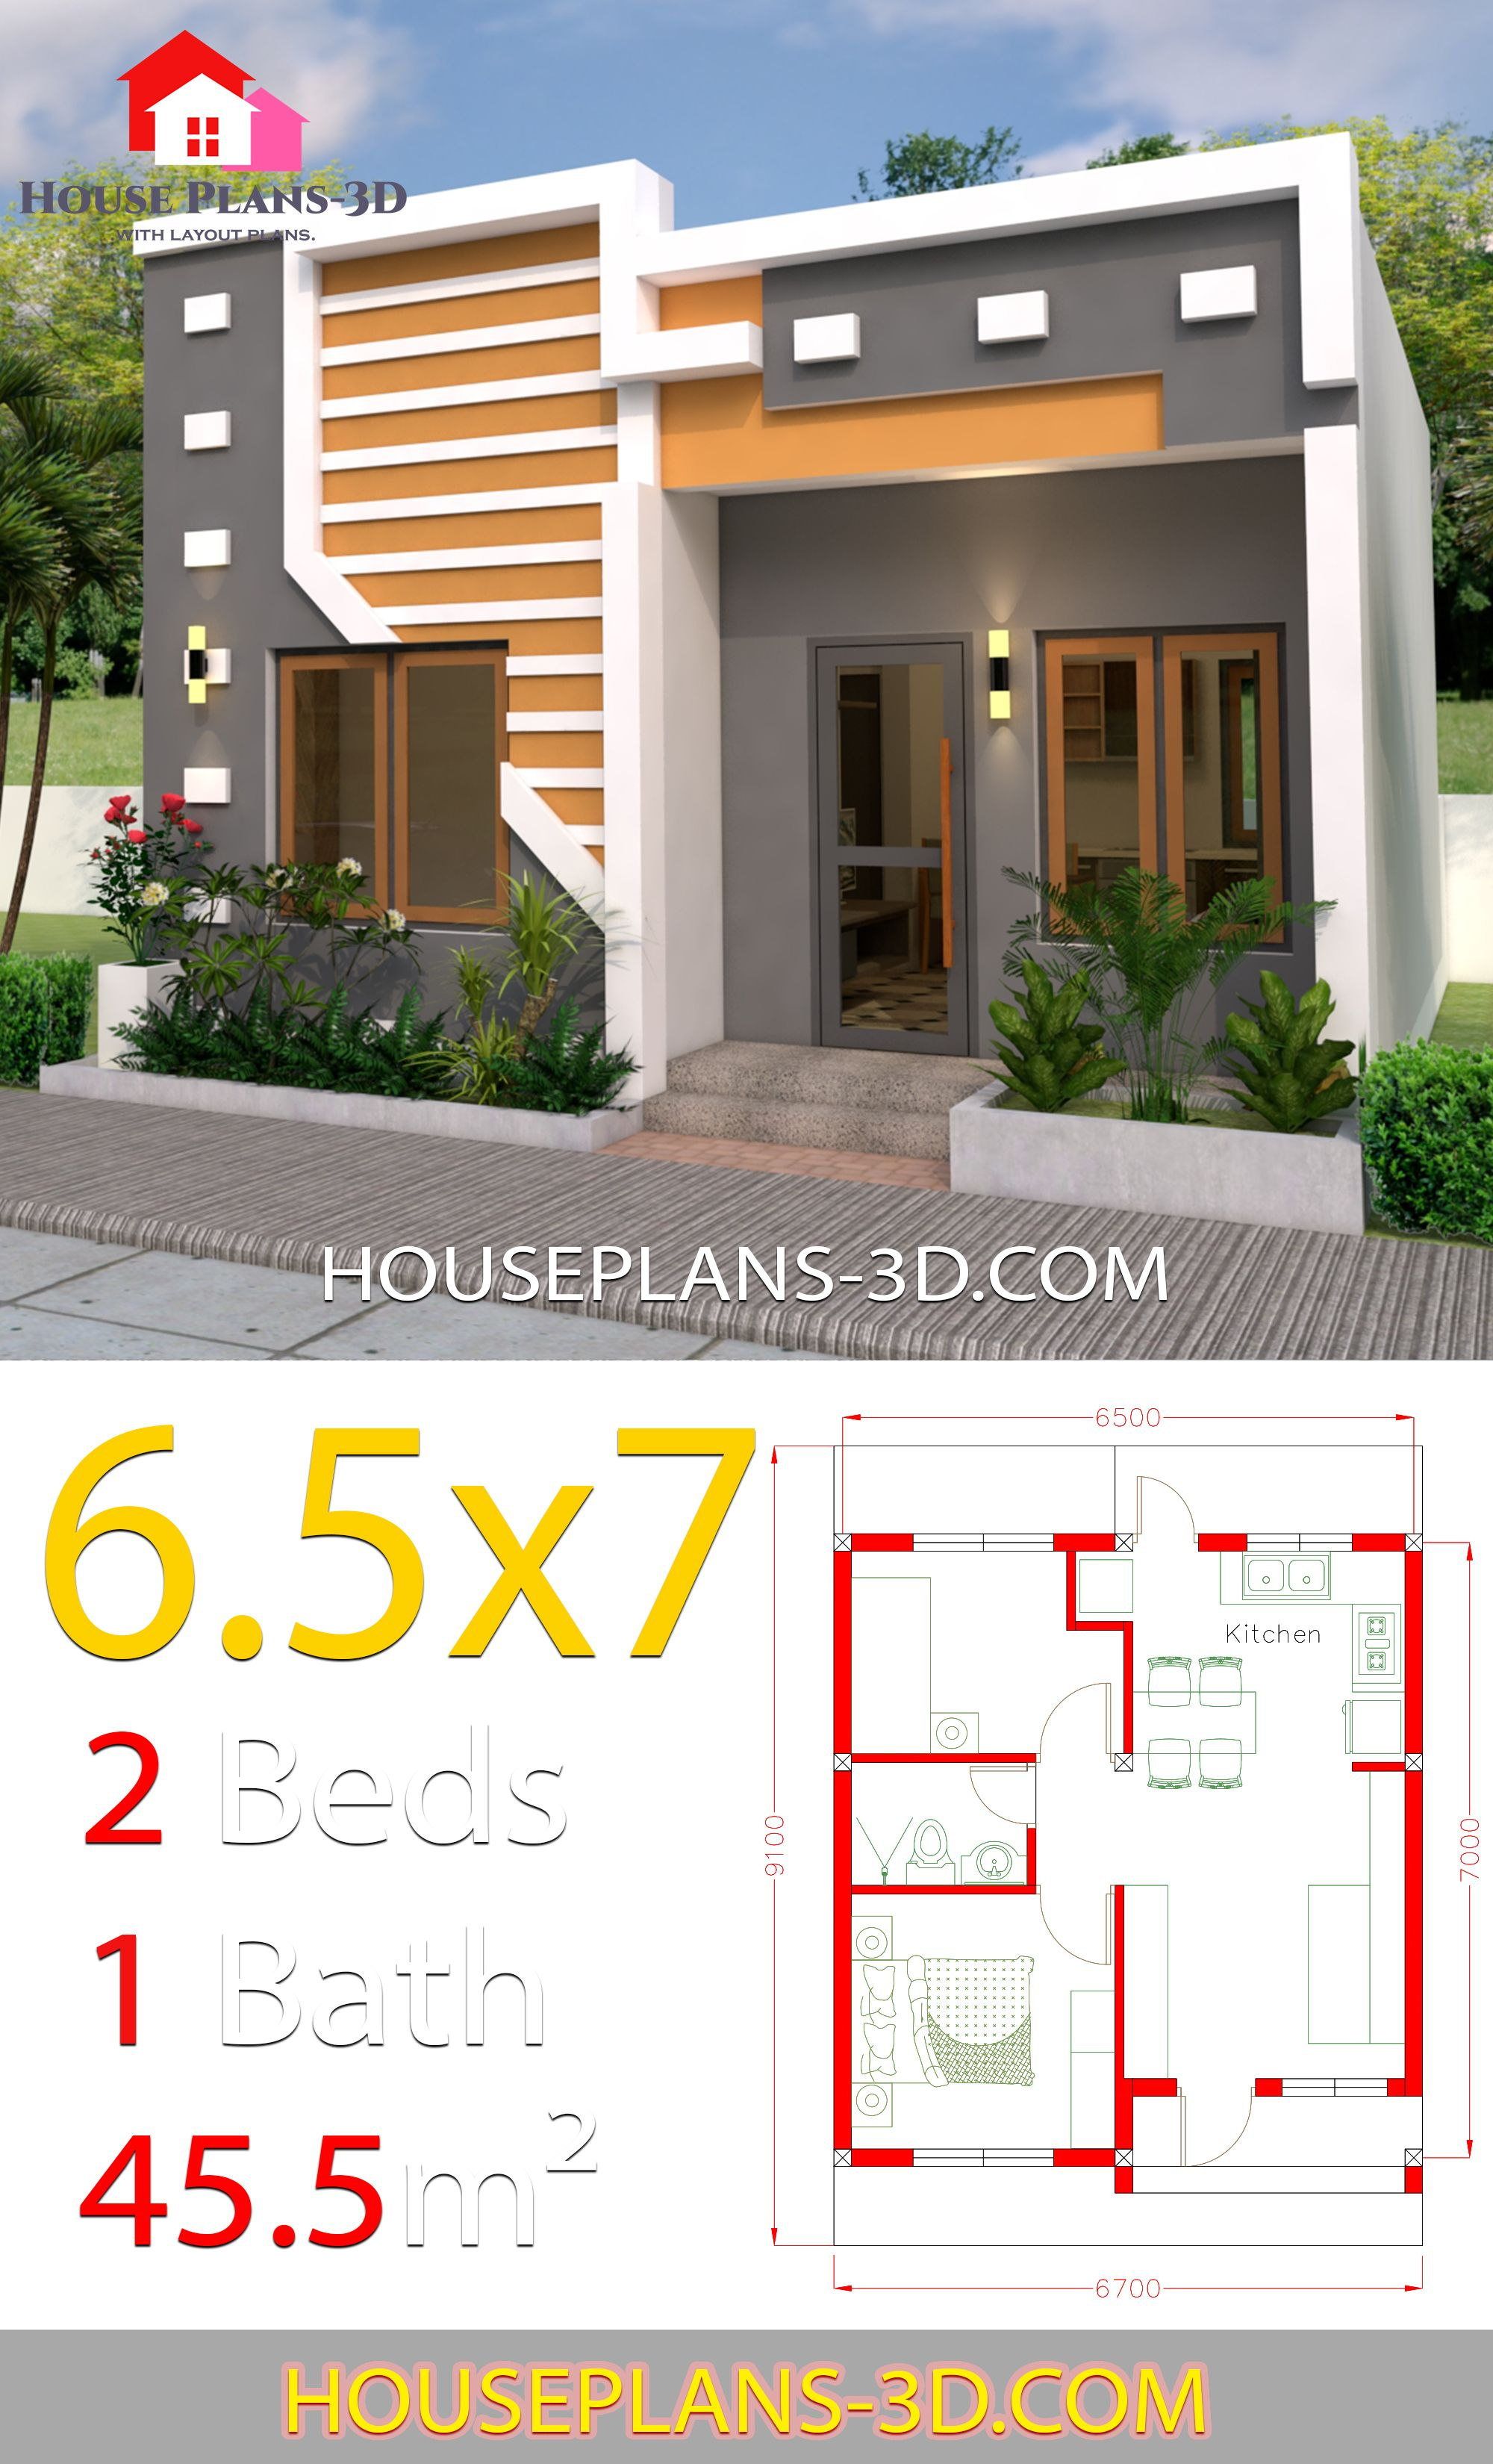 Small House Design 6 5x7 With 2 Bedrooms Full Plans House Plans 3d Small House Design Plans Small House Design House Fence Design